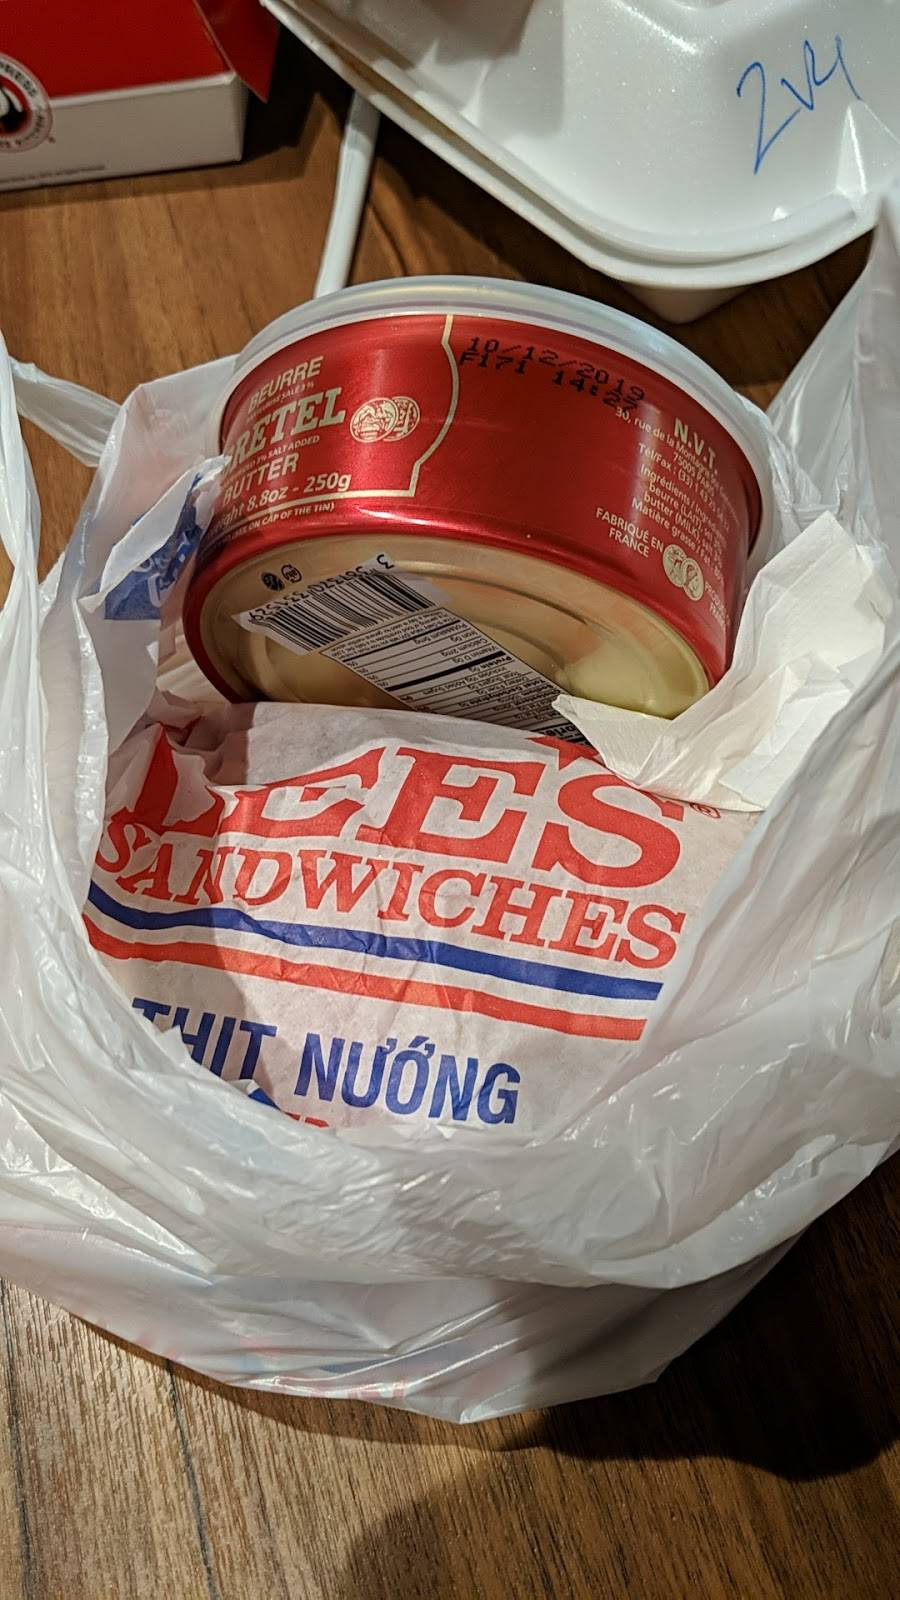 Lees Sandwiches - meal takeaway  | Photo 2 of 3 | Address: 3014 Lincoln Ave, Anaheim, CA 92801, USA | Phone: (714) 826-9888